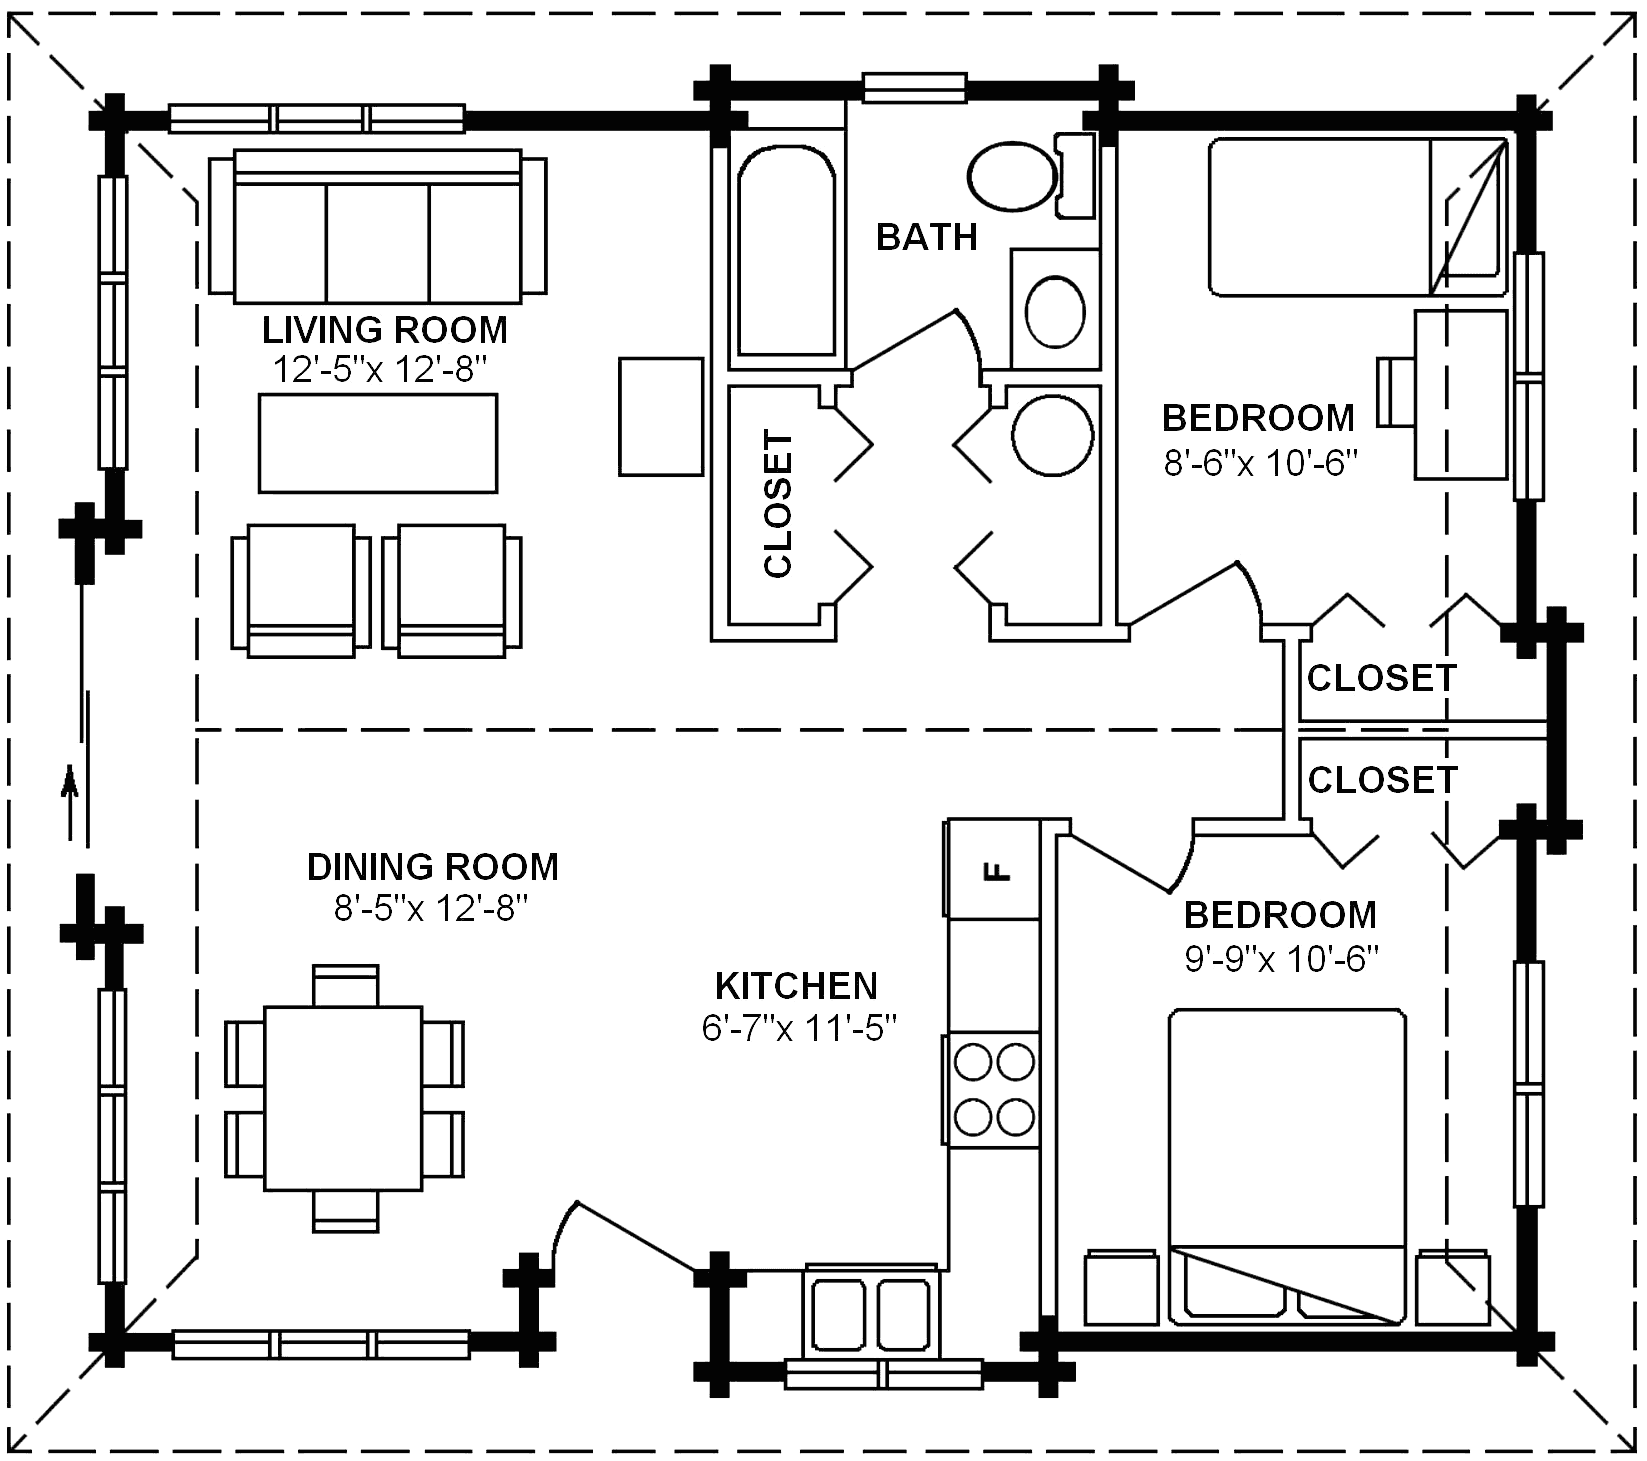 3.1.3-SHASTA FLOOR PLAN (MAIN FLOOR)